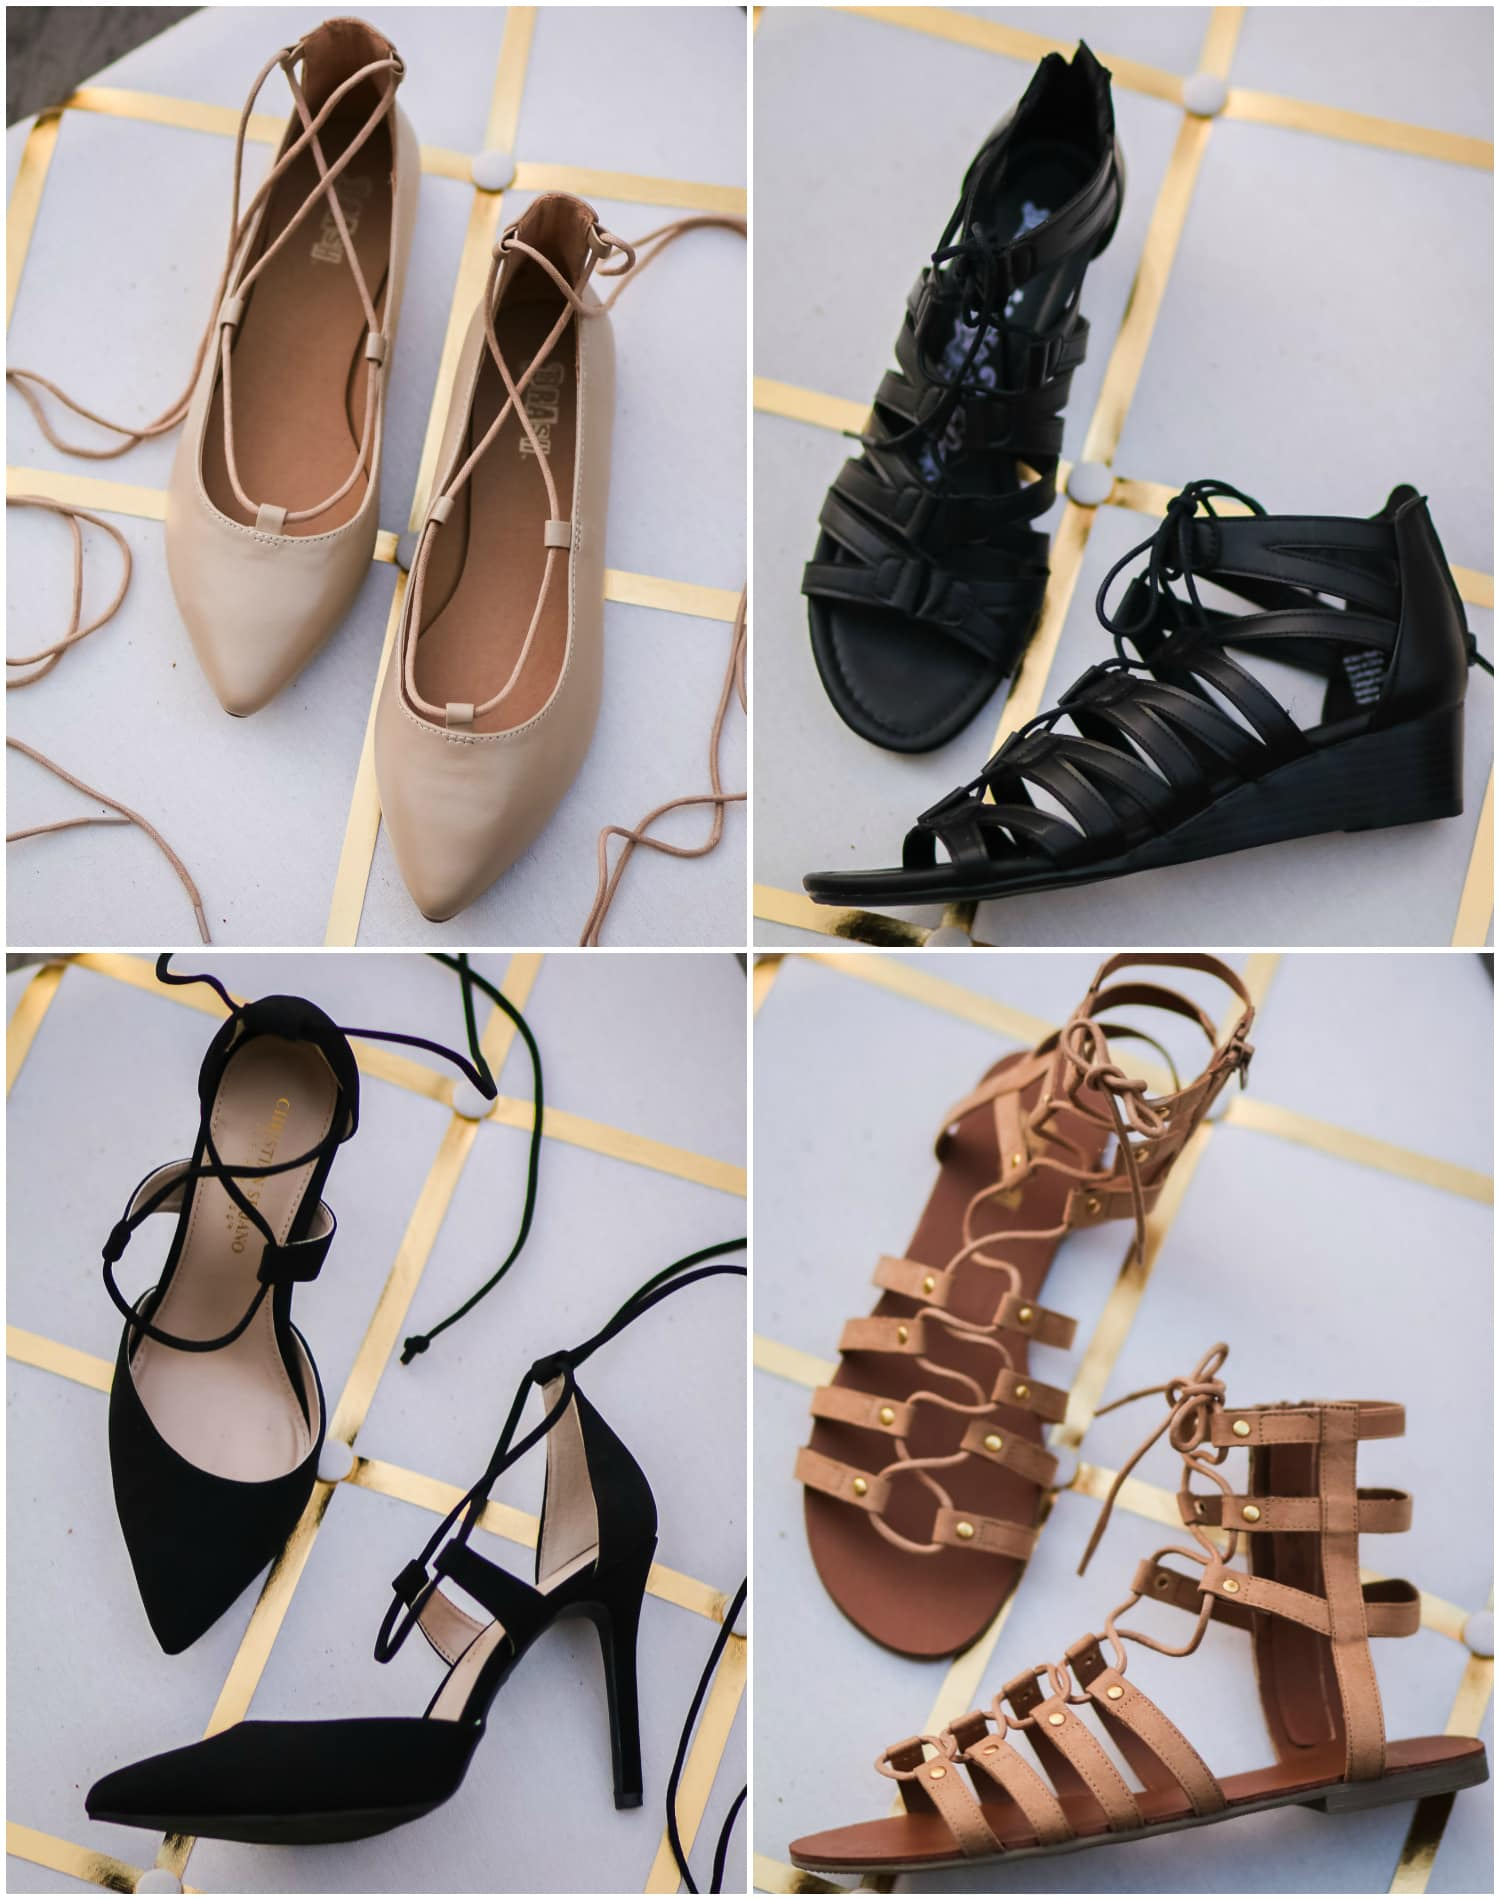 These lace-up shoes are so cute, and they're all available at Payless for under $40!